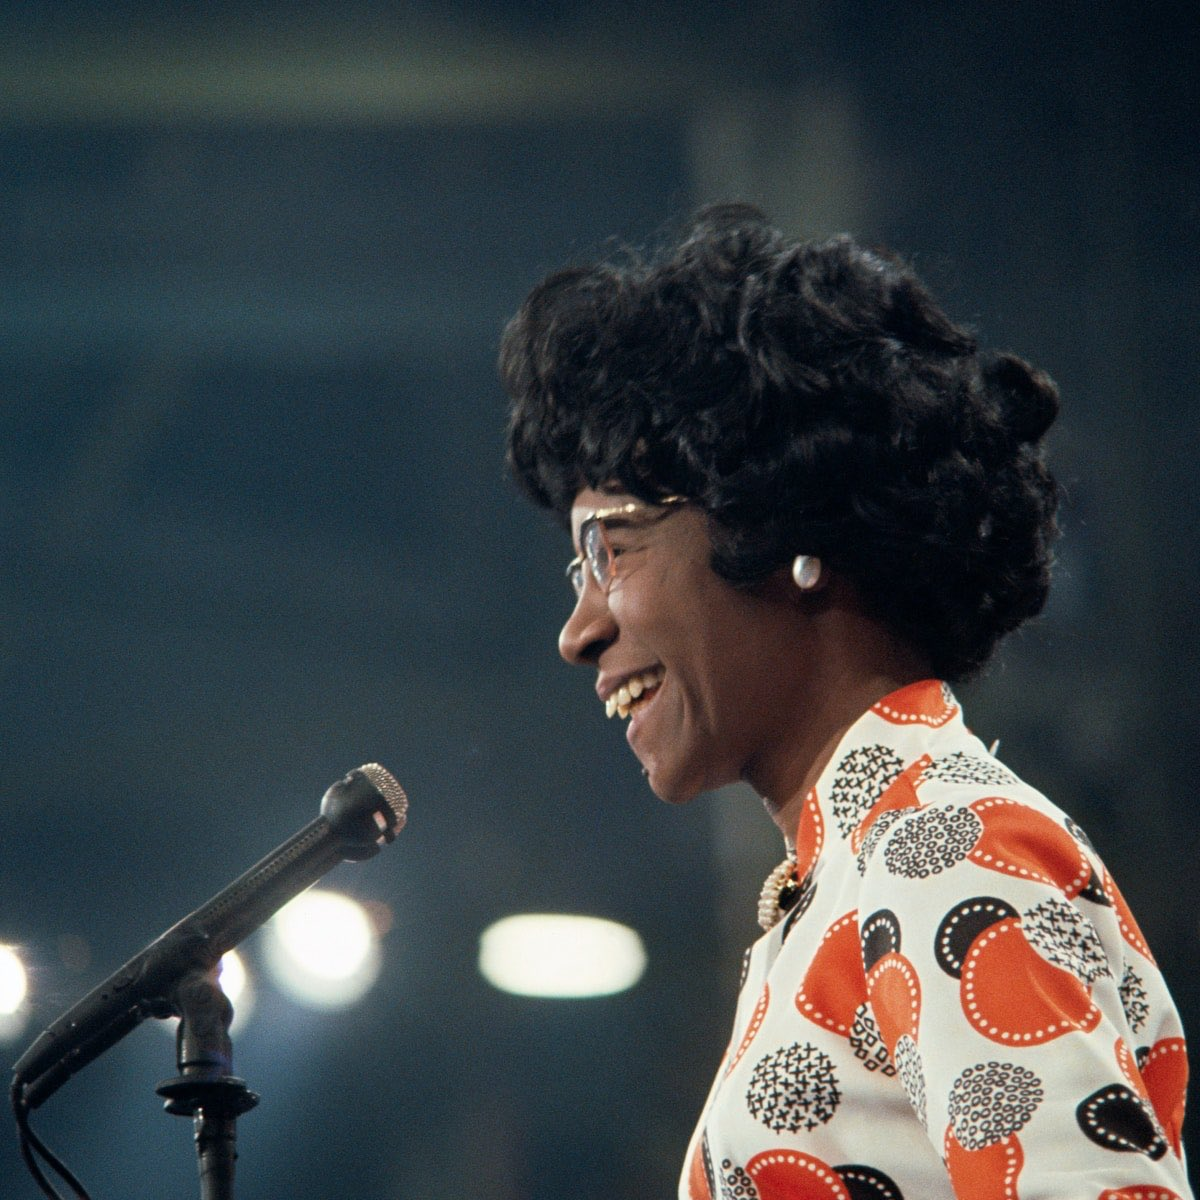 "Tonight, I remember Shirley Chisholm. In 1972, she said: ""I want history to remember me not as the first Black woman to run for the presidency, but as a Black woman who lived in the 20th century and dared to be herself."" Rep. Chisholm paved the way for Senator Harris. An icon."